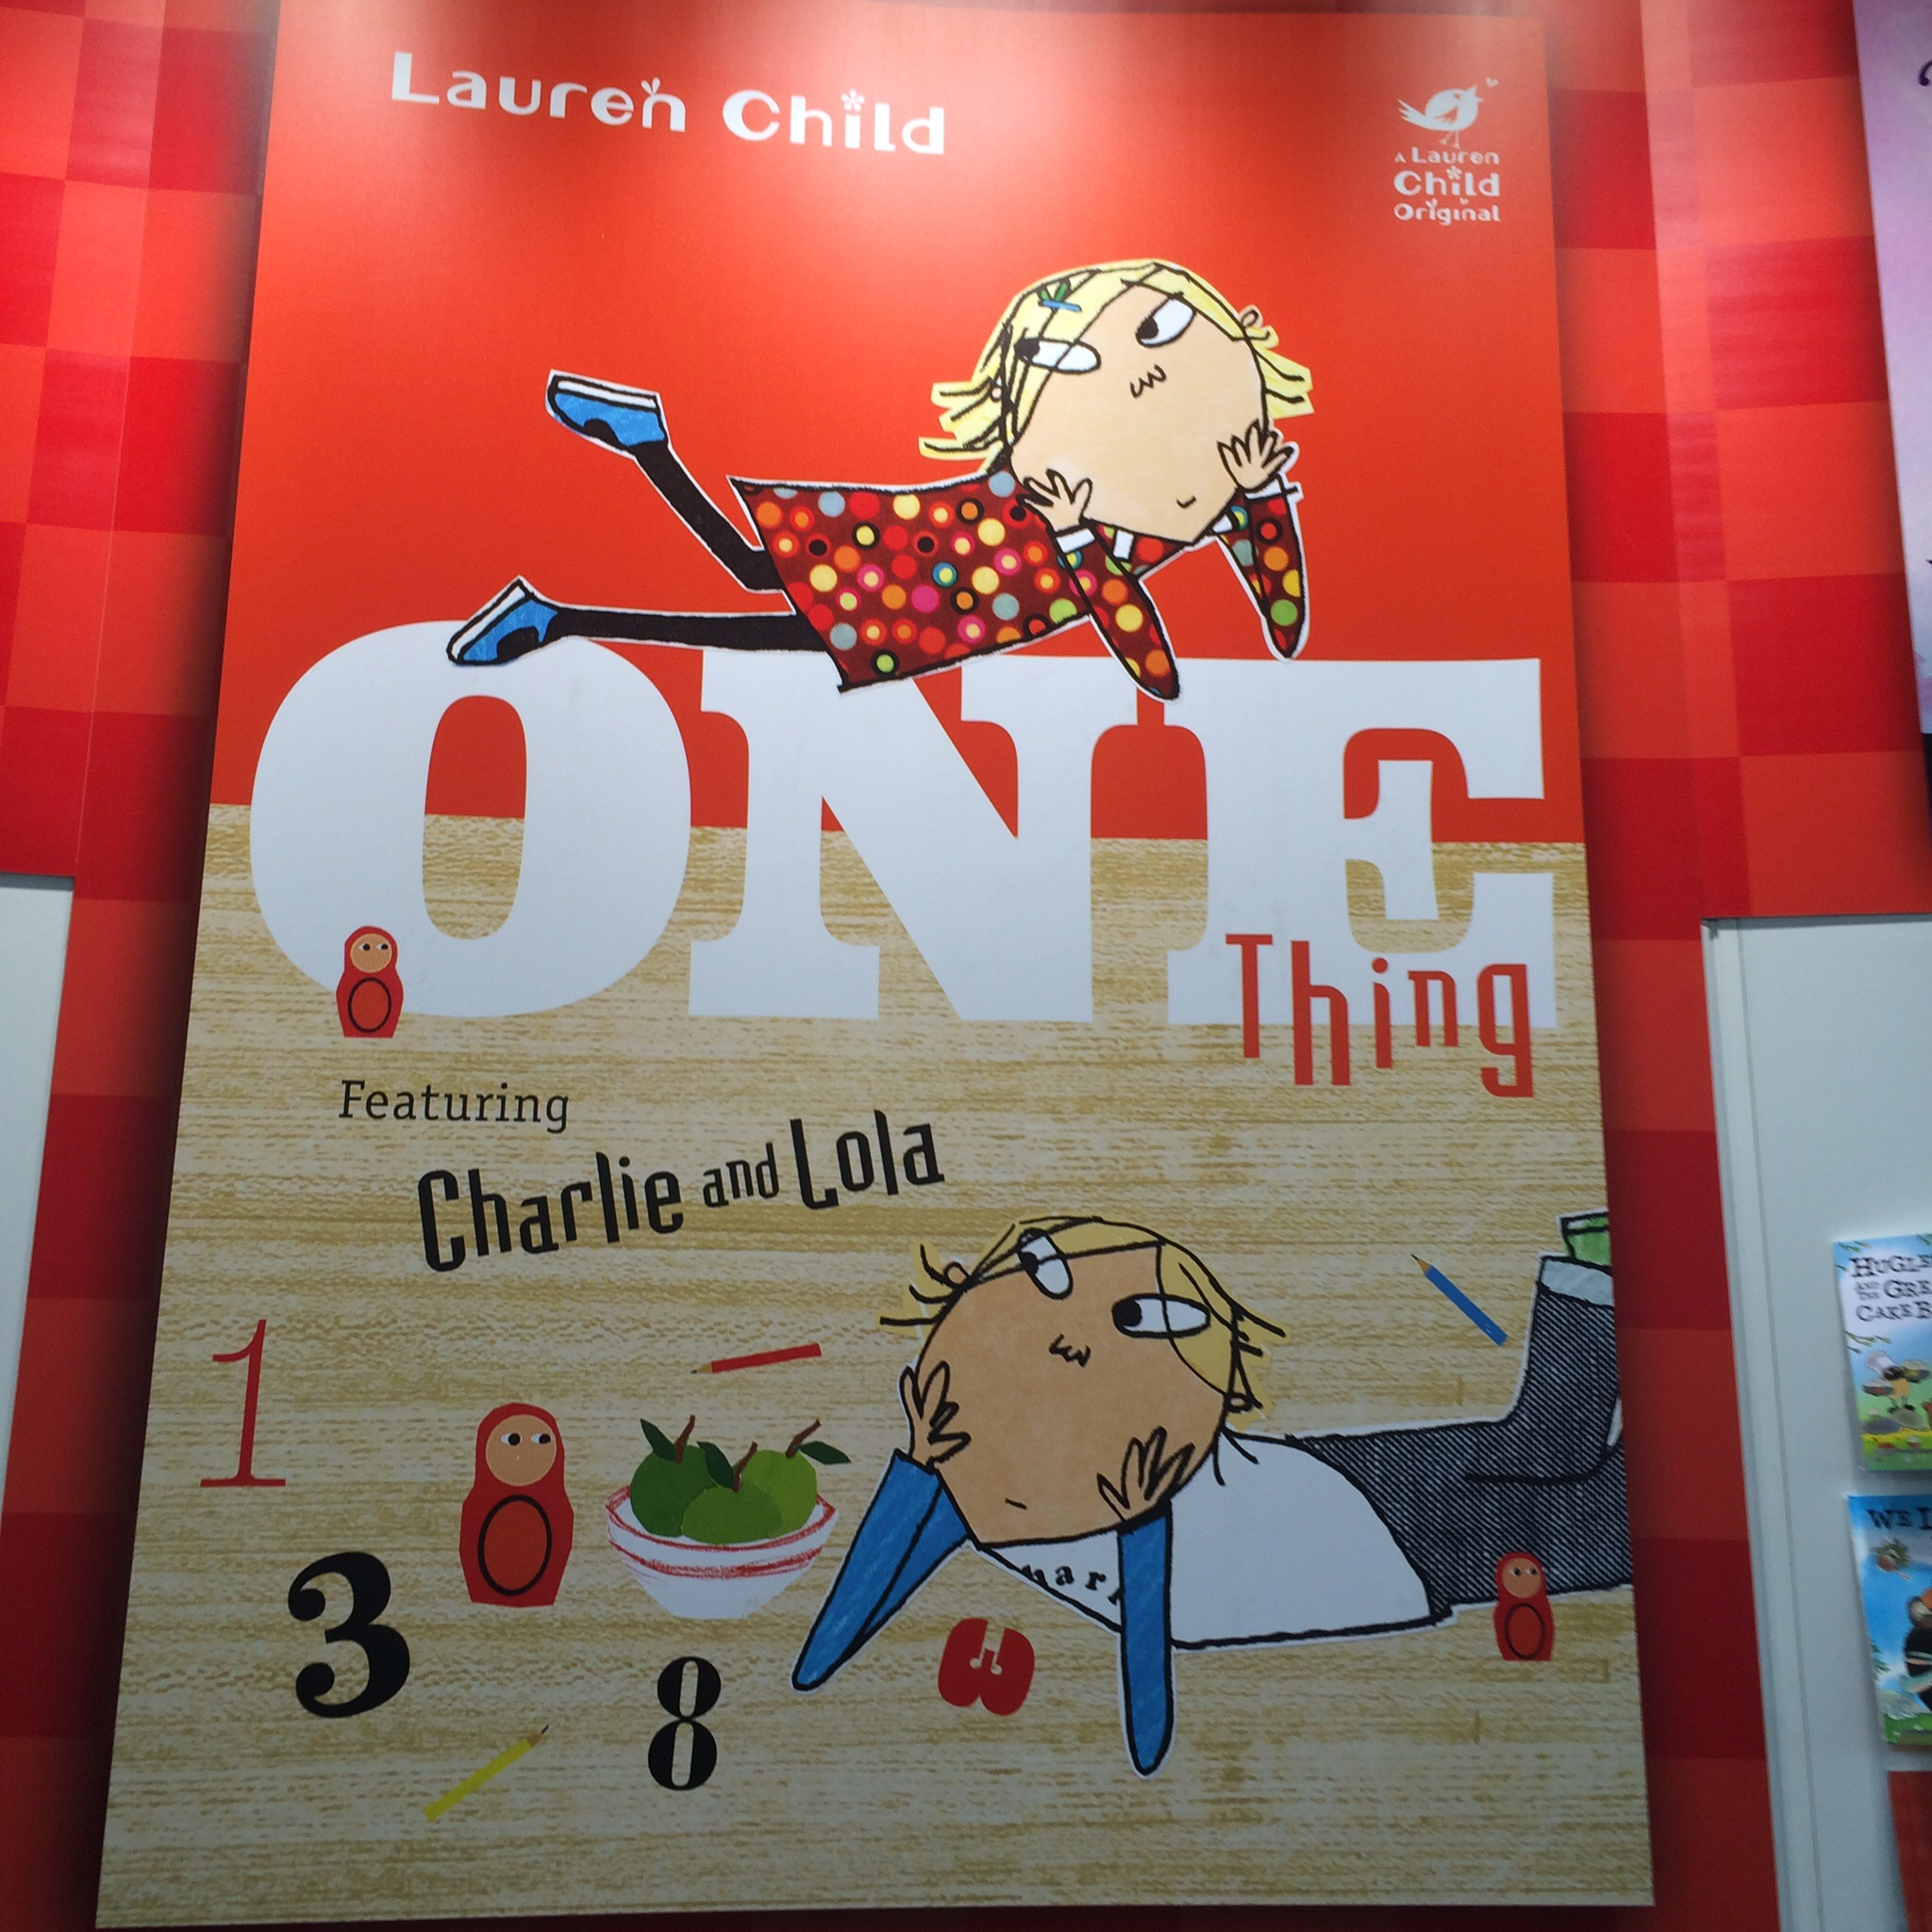 Lauren Child's new picture book.